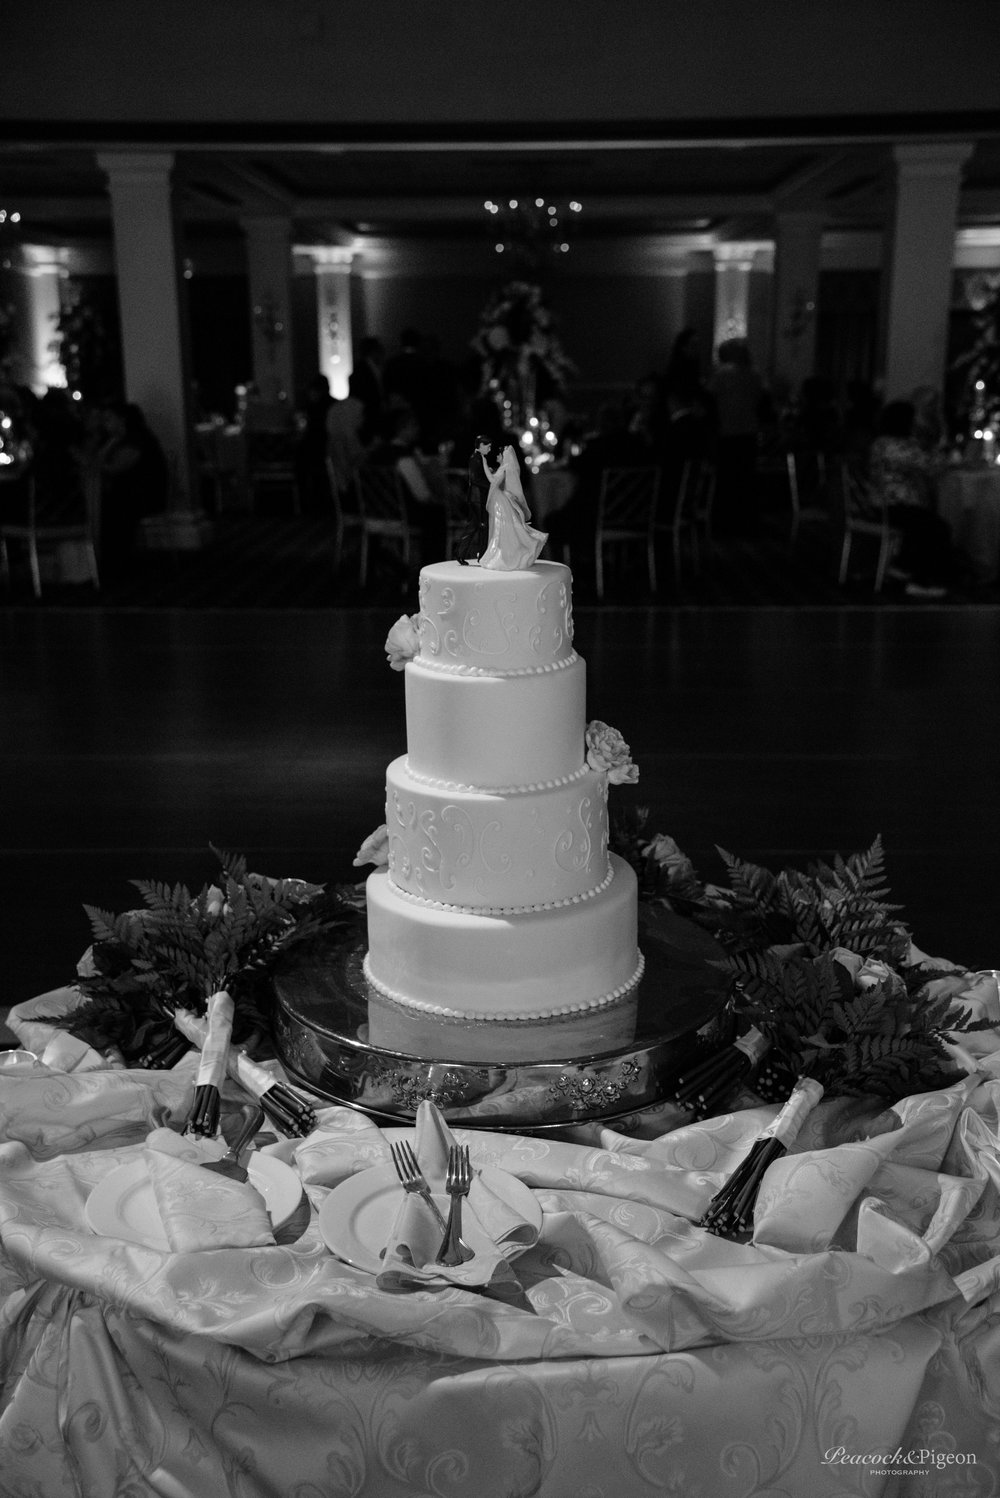 The_Wedding_of_Radwa_and_Kareem_at_Somerset_Palace_Part_Twelve_The_Decorations_Black_and_White-Watermarked-29.jpg